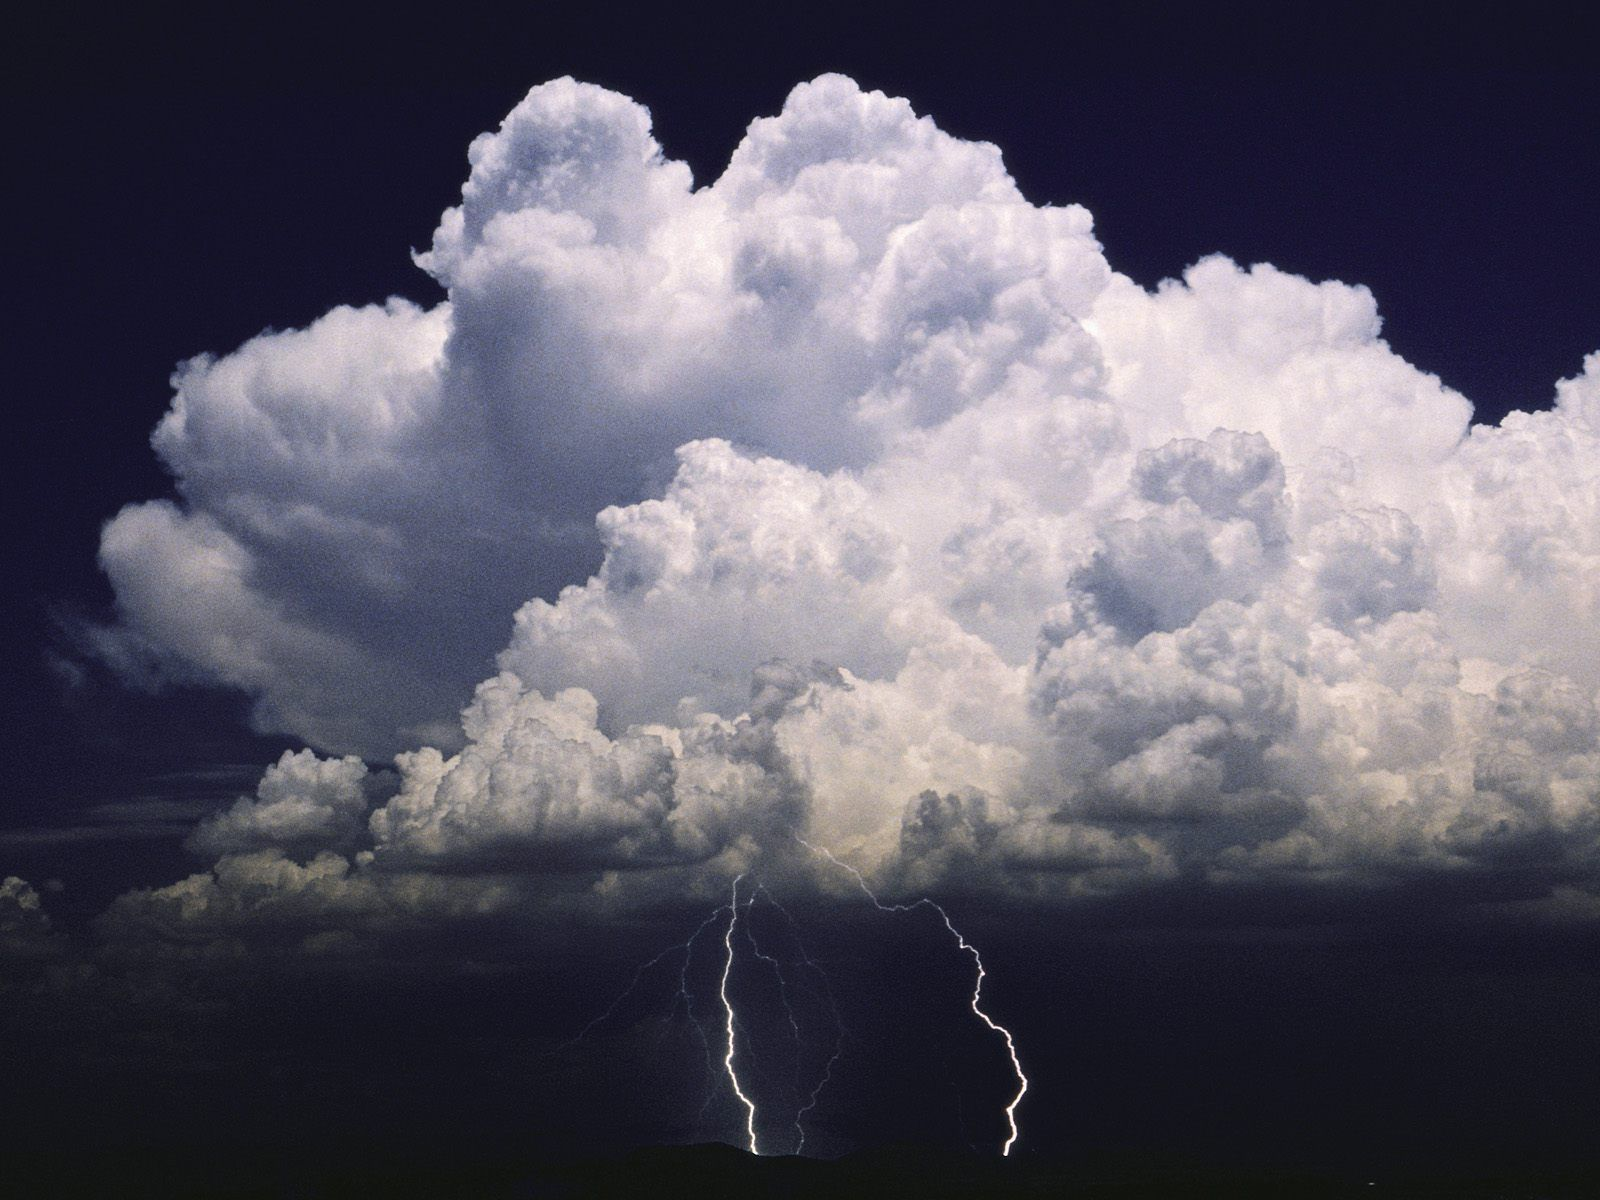 Free Animated Fall Desktop Wallpaper Hd Lightning Storm Backgrounds Pixelstalk Net